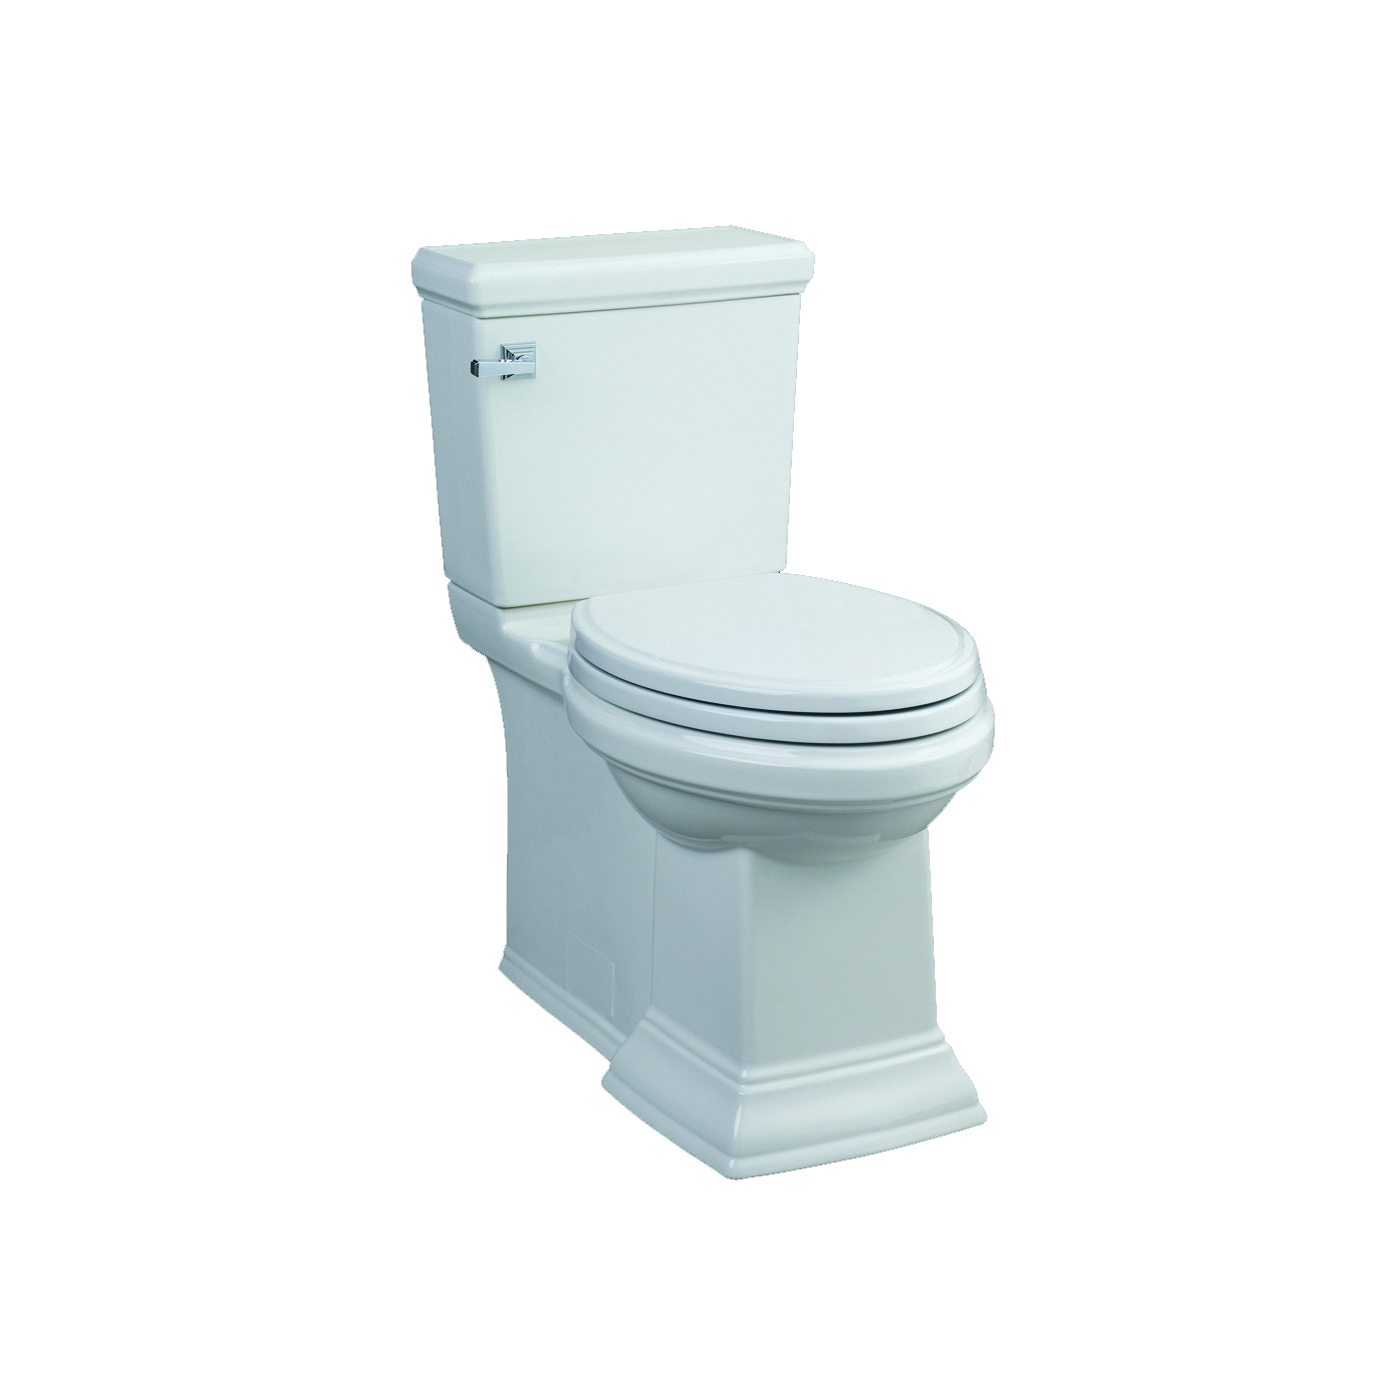 Picture of American Standard Town Square 4216228.020 Toilet Tank, 1.28 gpf Flush, 12 in Rough-In, Vitreous China, White